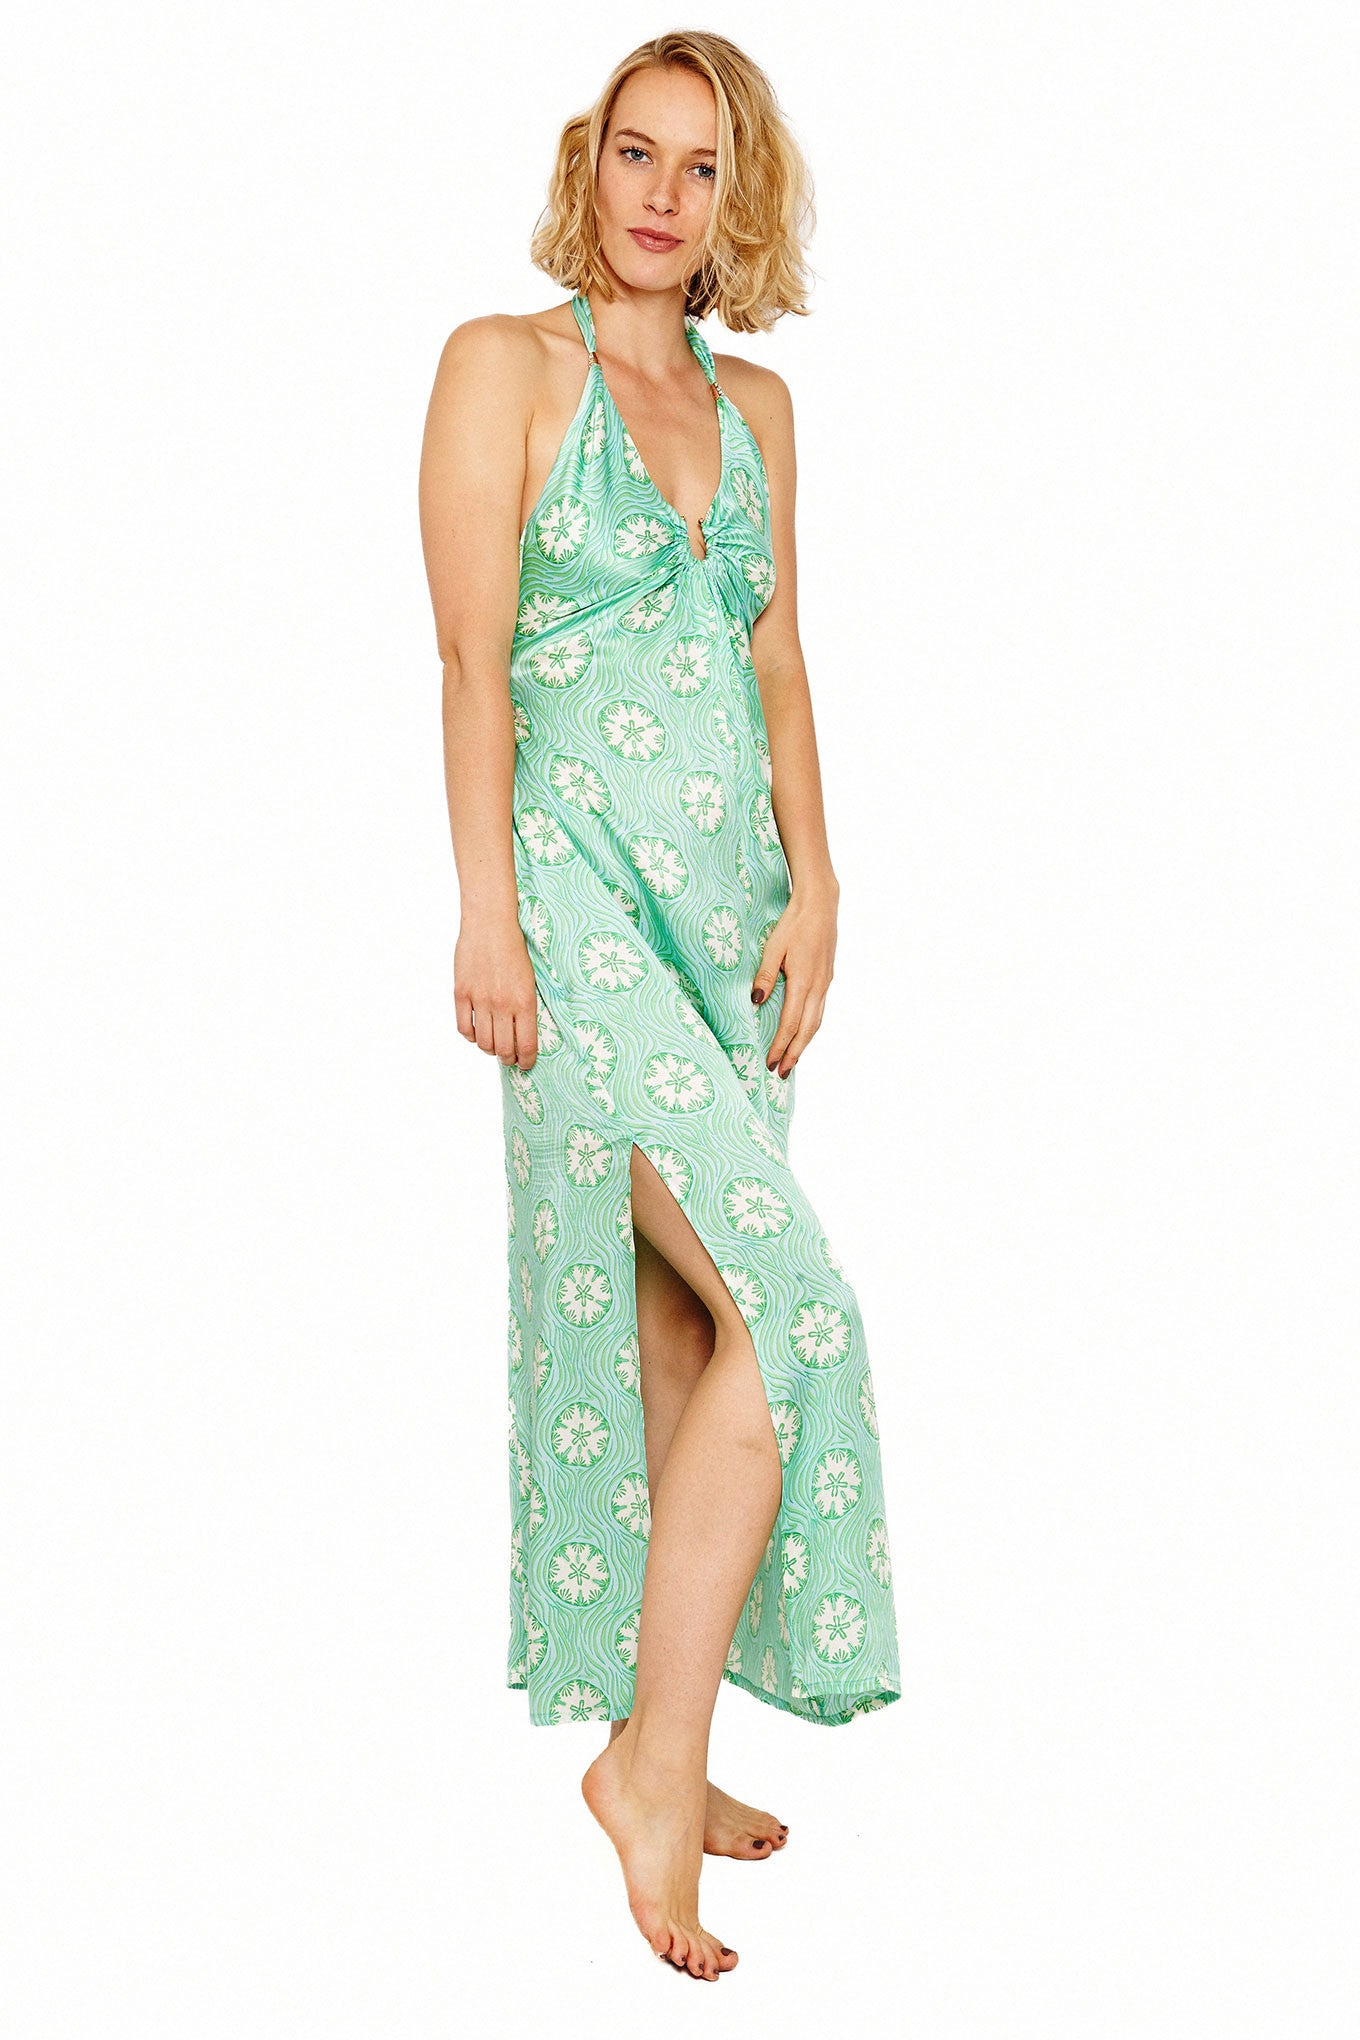 Lotty B Halter-Neck Dress (Sand Dollar Repeat Green) Front